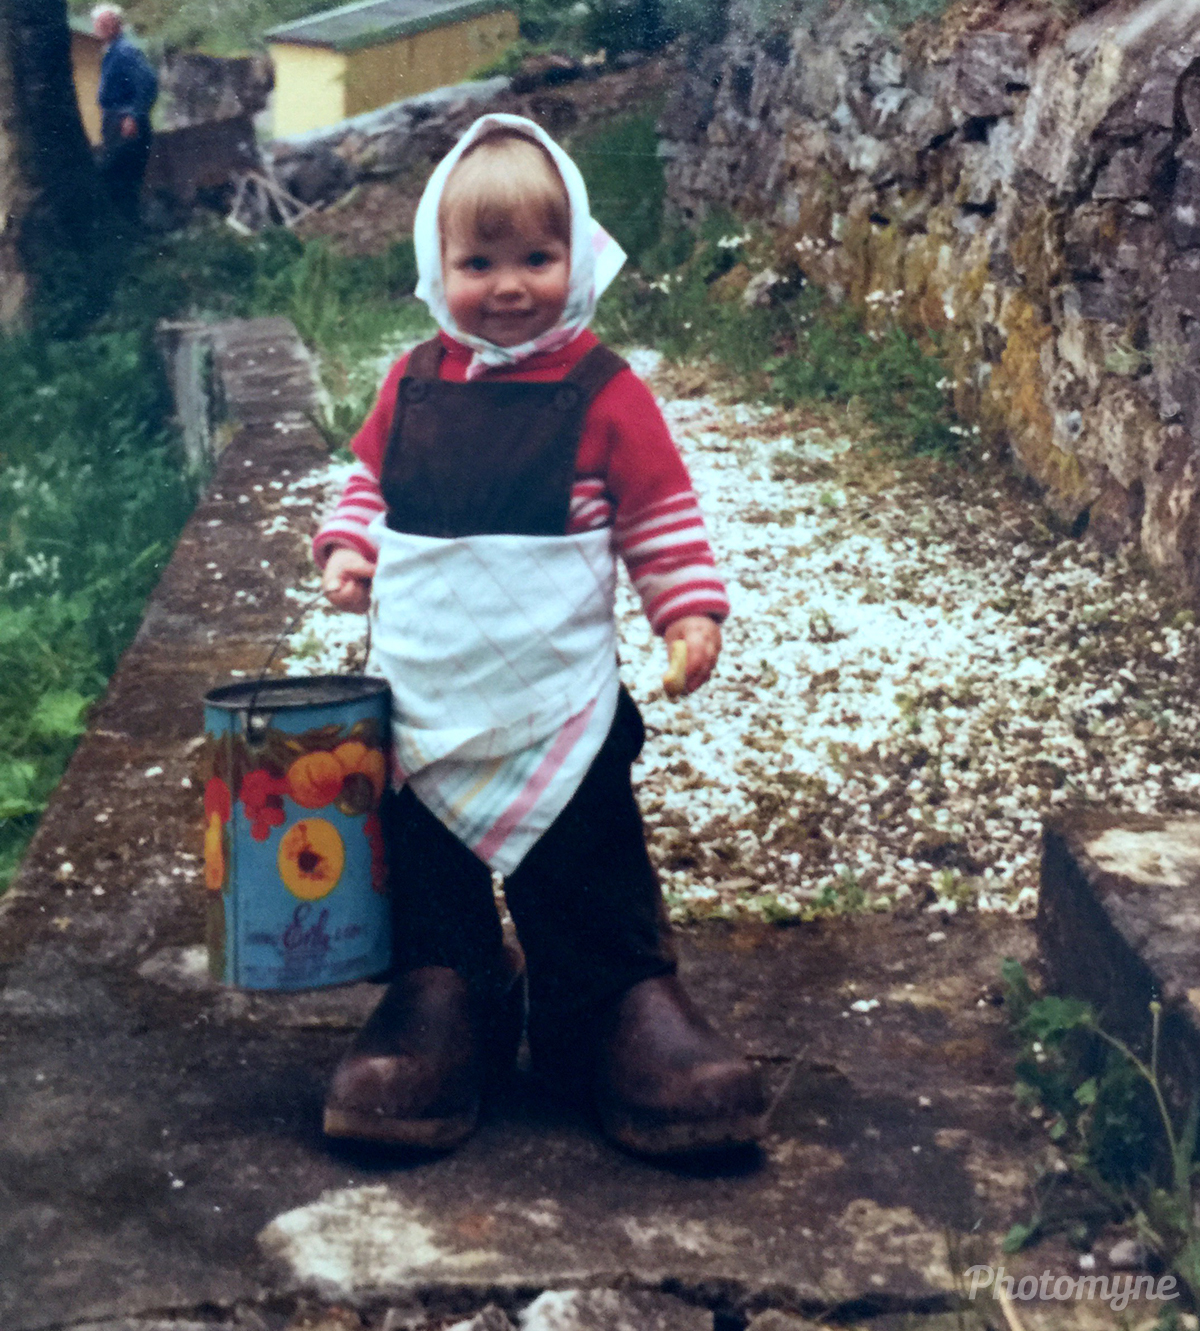 My child in 1978 nearby Ålesund, Norway, 1978